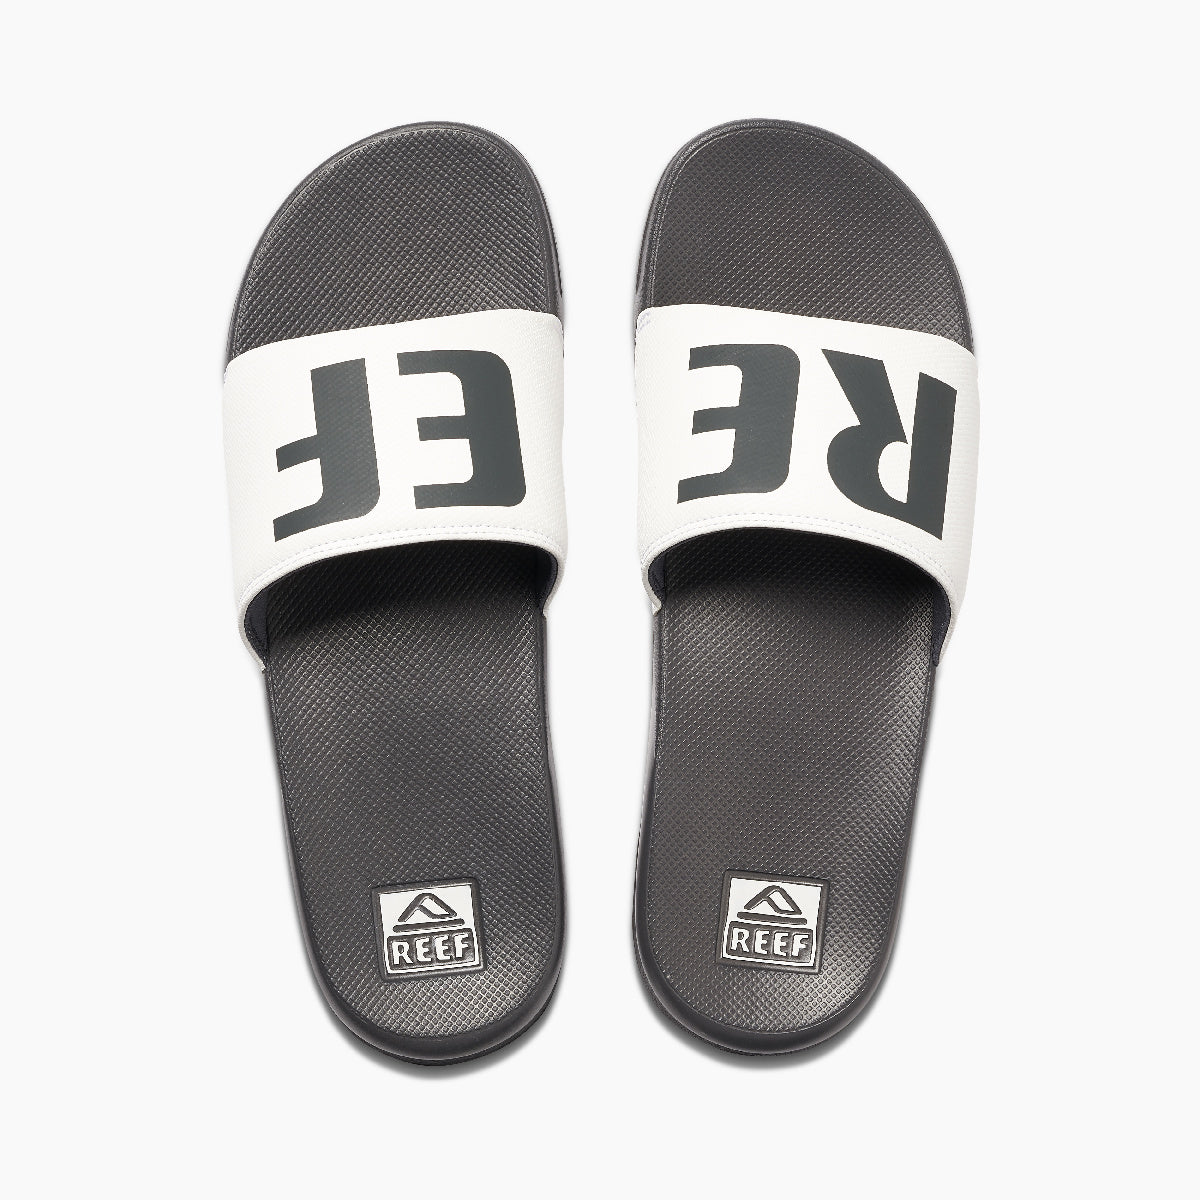 Reef One Slide Sandals